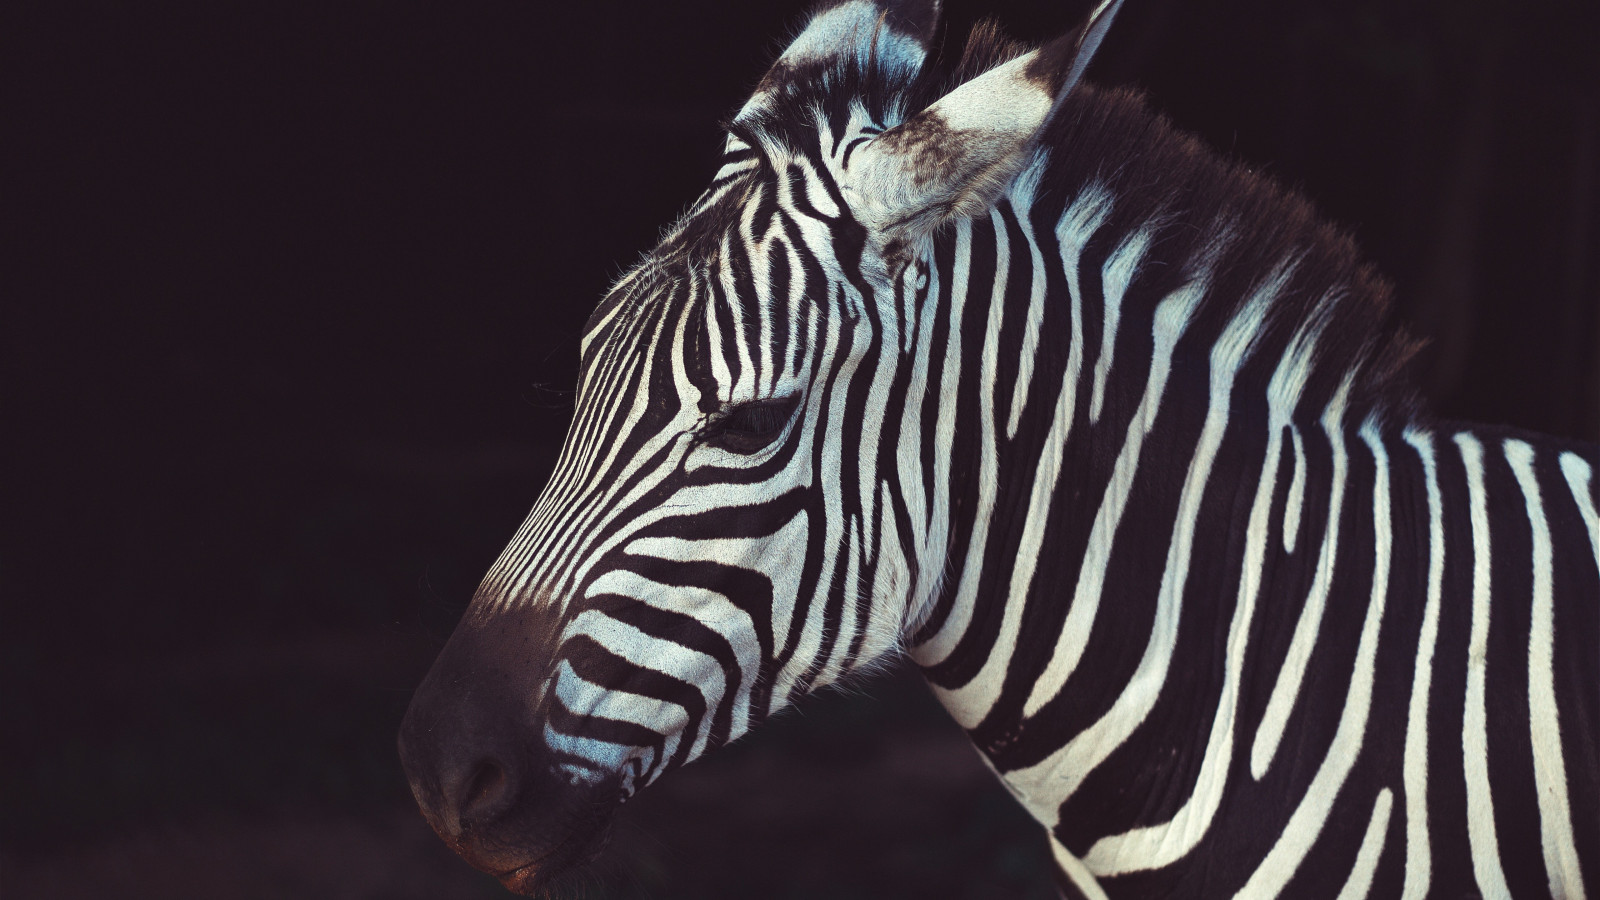 Zebra portrait from Greeneville Zoo, USA | 1600x900 wallpaper